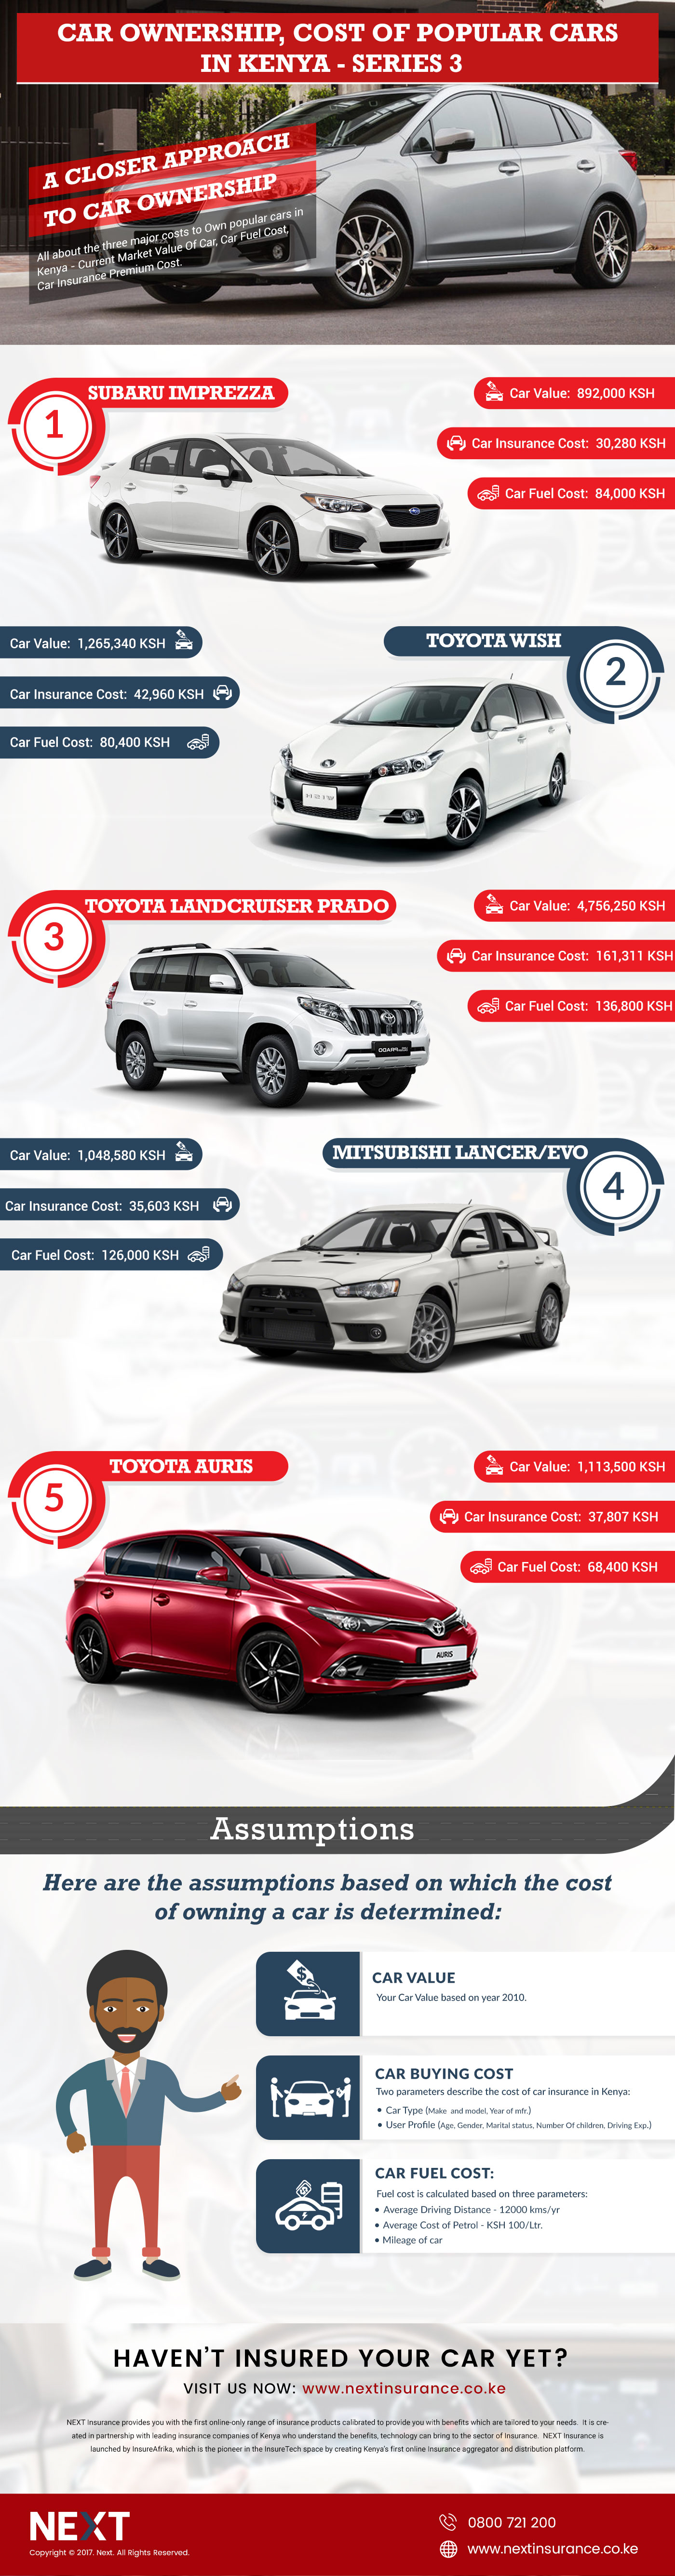 Car Ownership Cost For Popular Cars In Kenya Series 3 Infographic